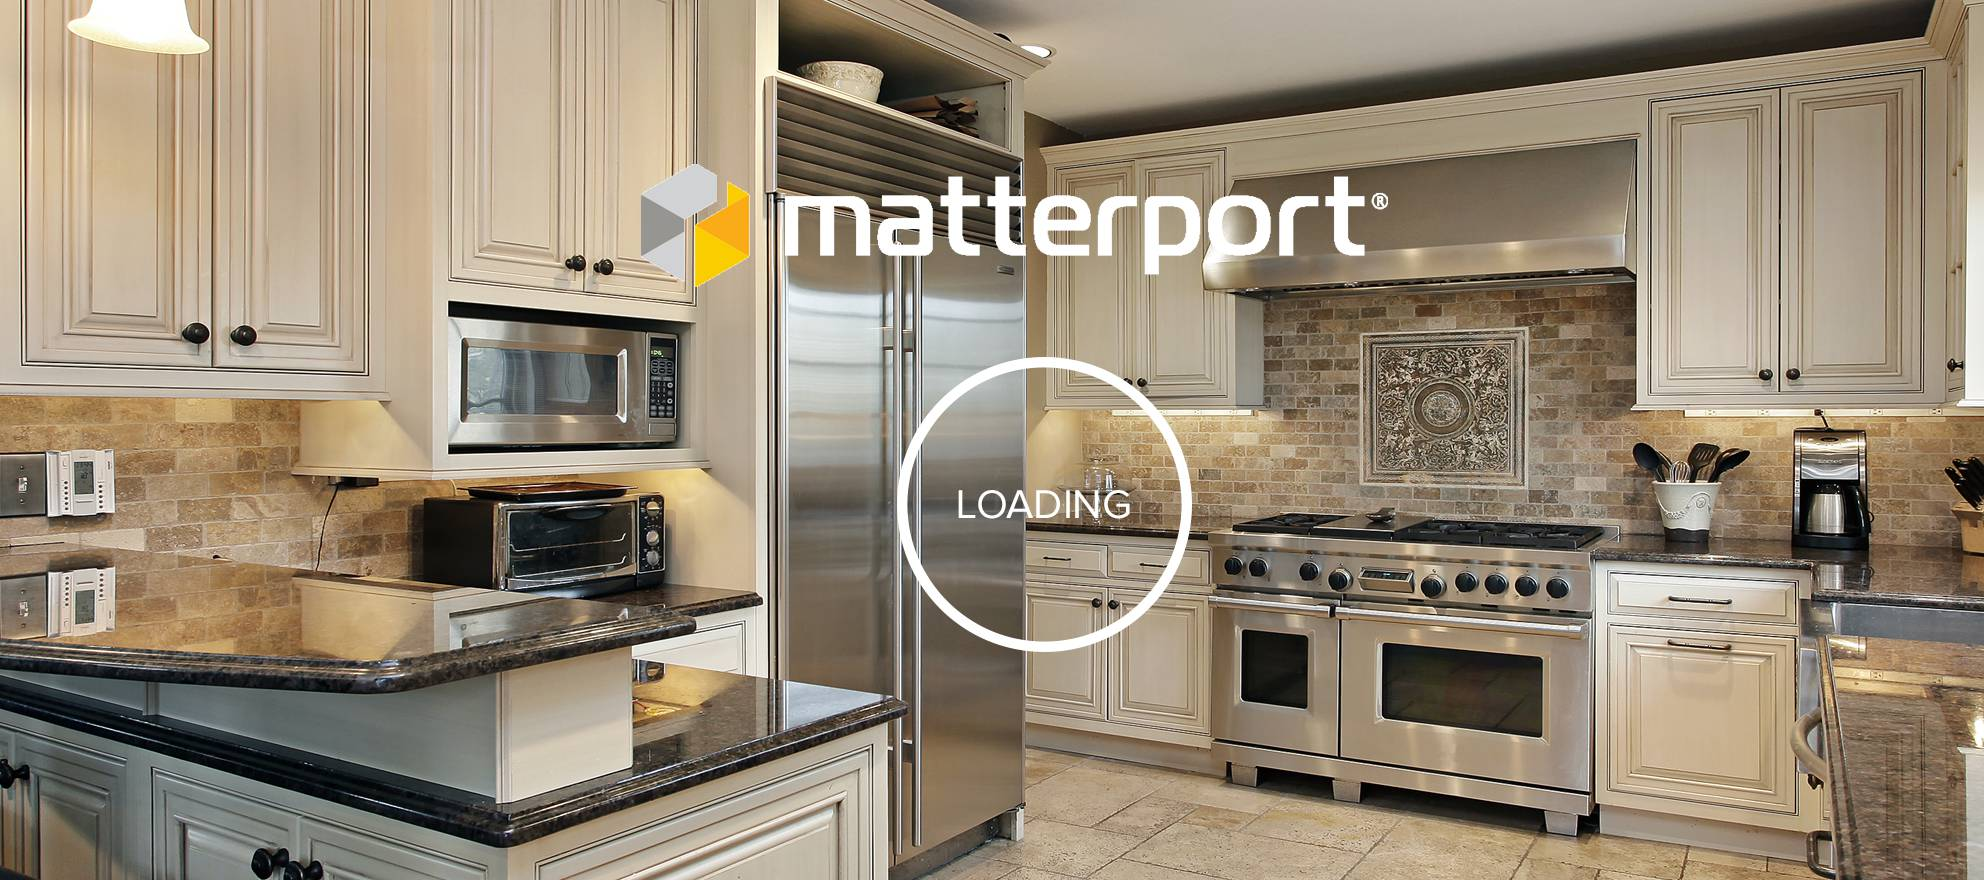 Matterport injects social media and 'storytelling' functionality into platform